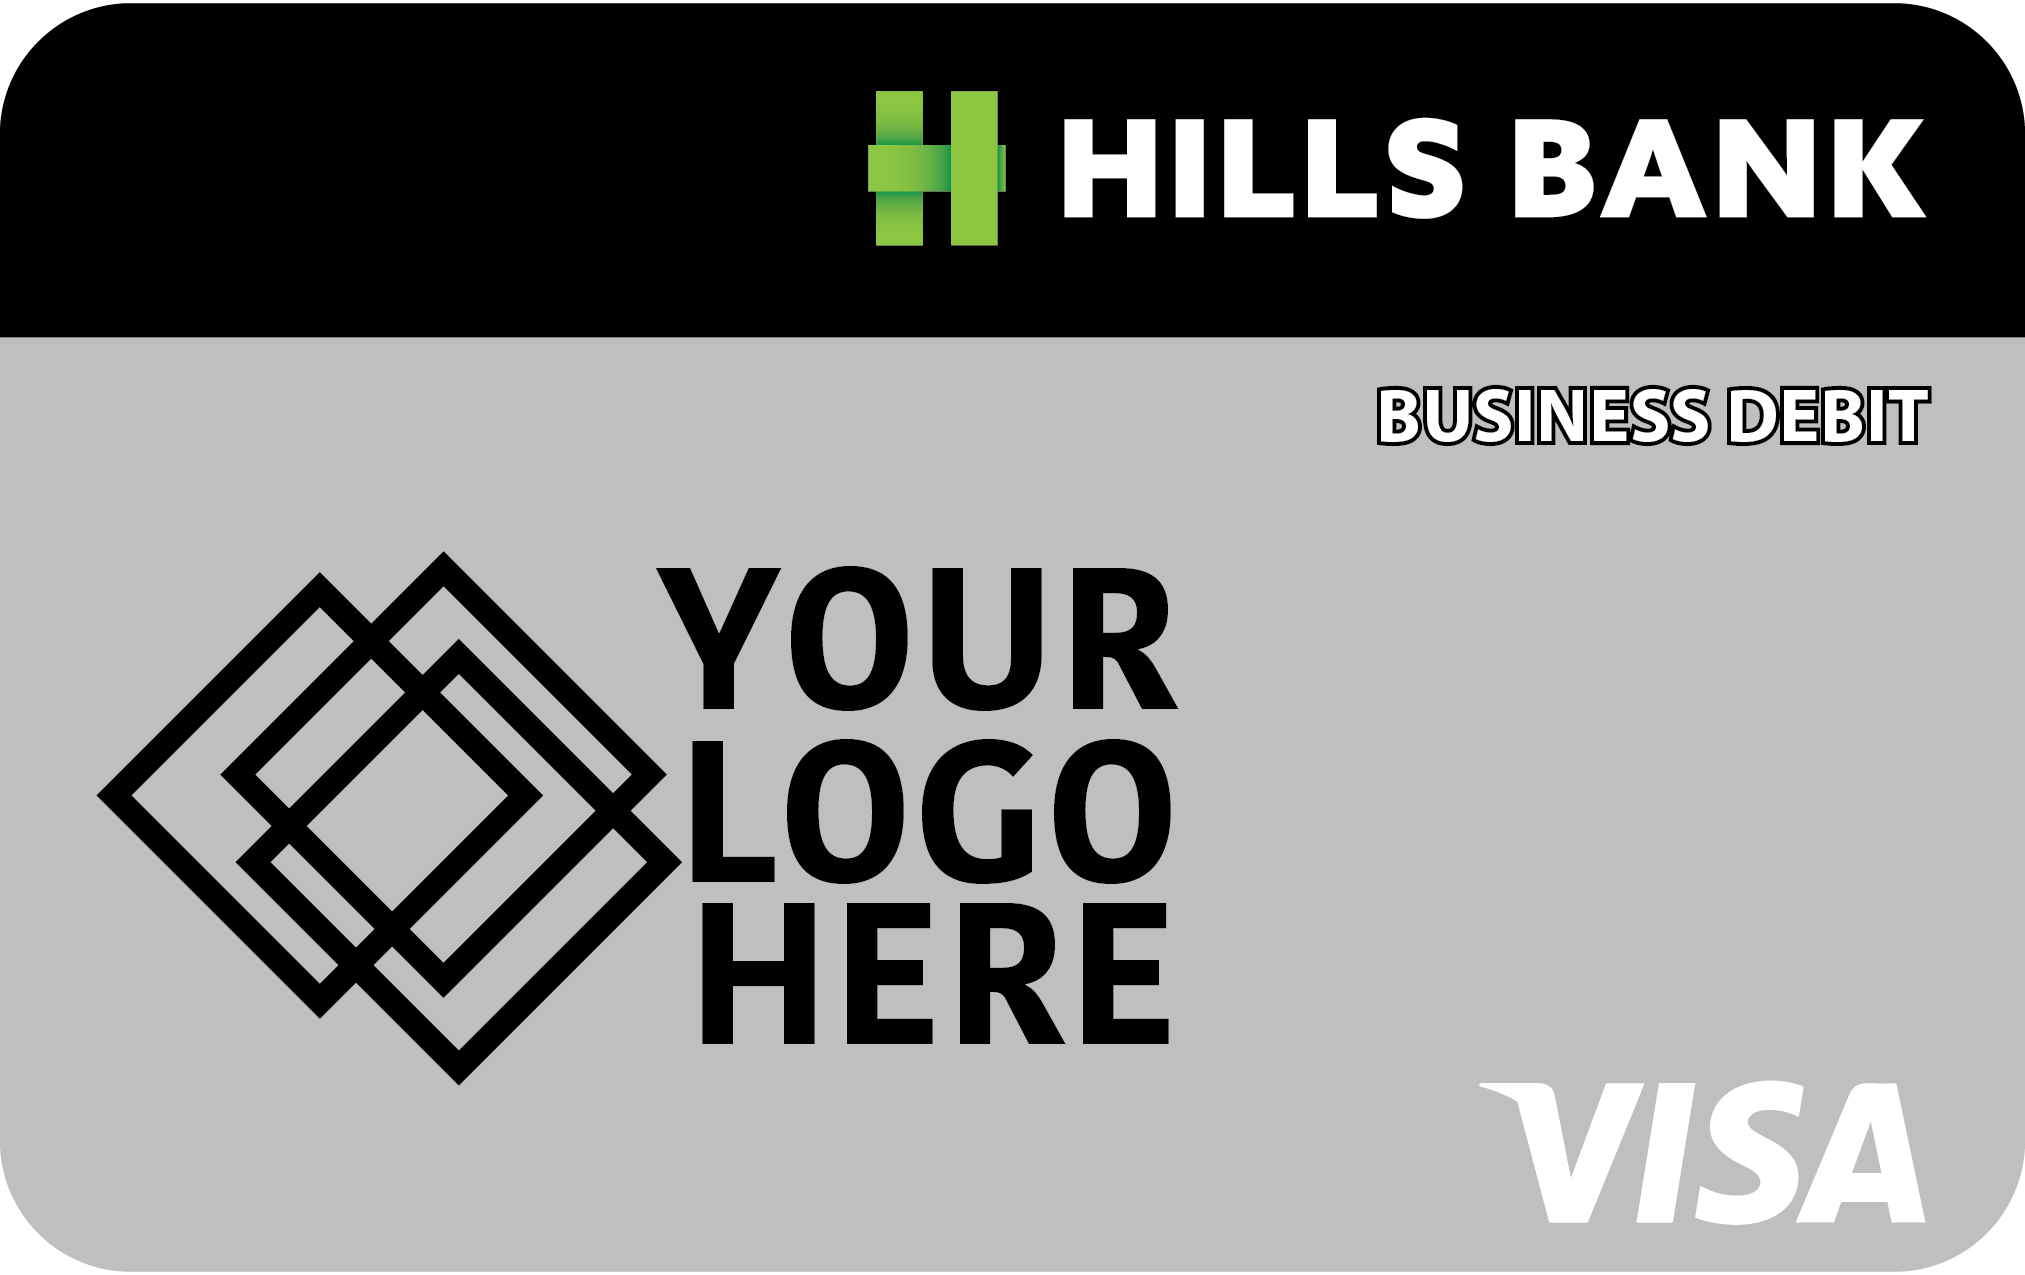 hills bank company card image